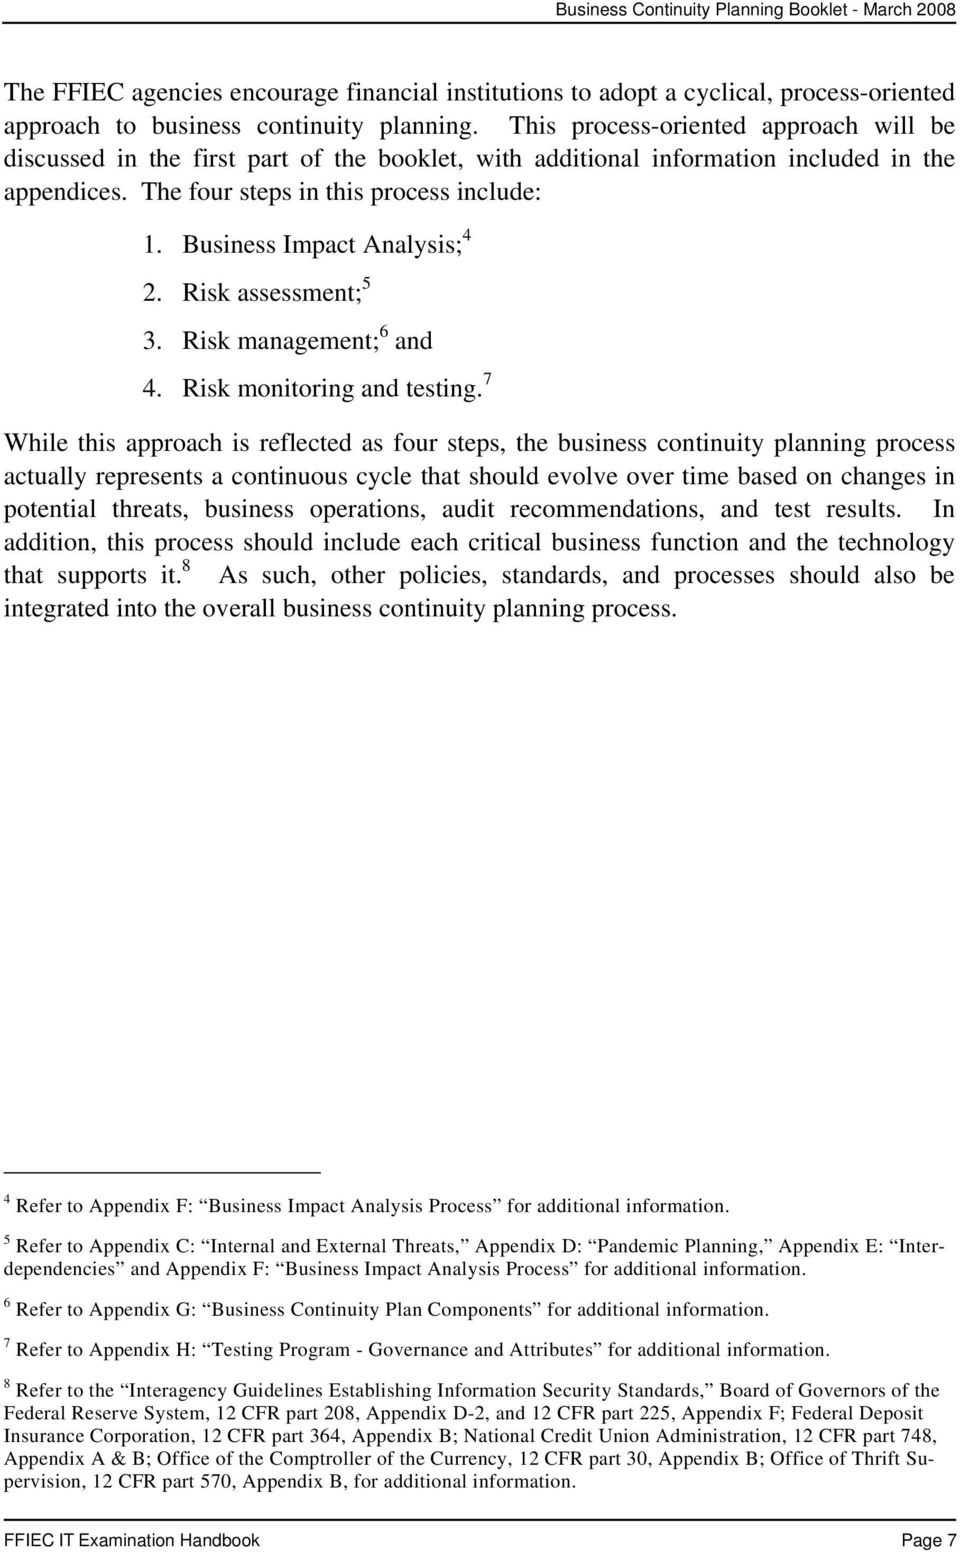 Business Impact Analysis; 4 2. Risk assessment; 5 3. Risk management; 6 and 4. Risk monitoring and testing.